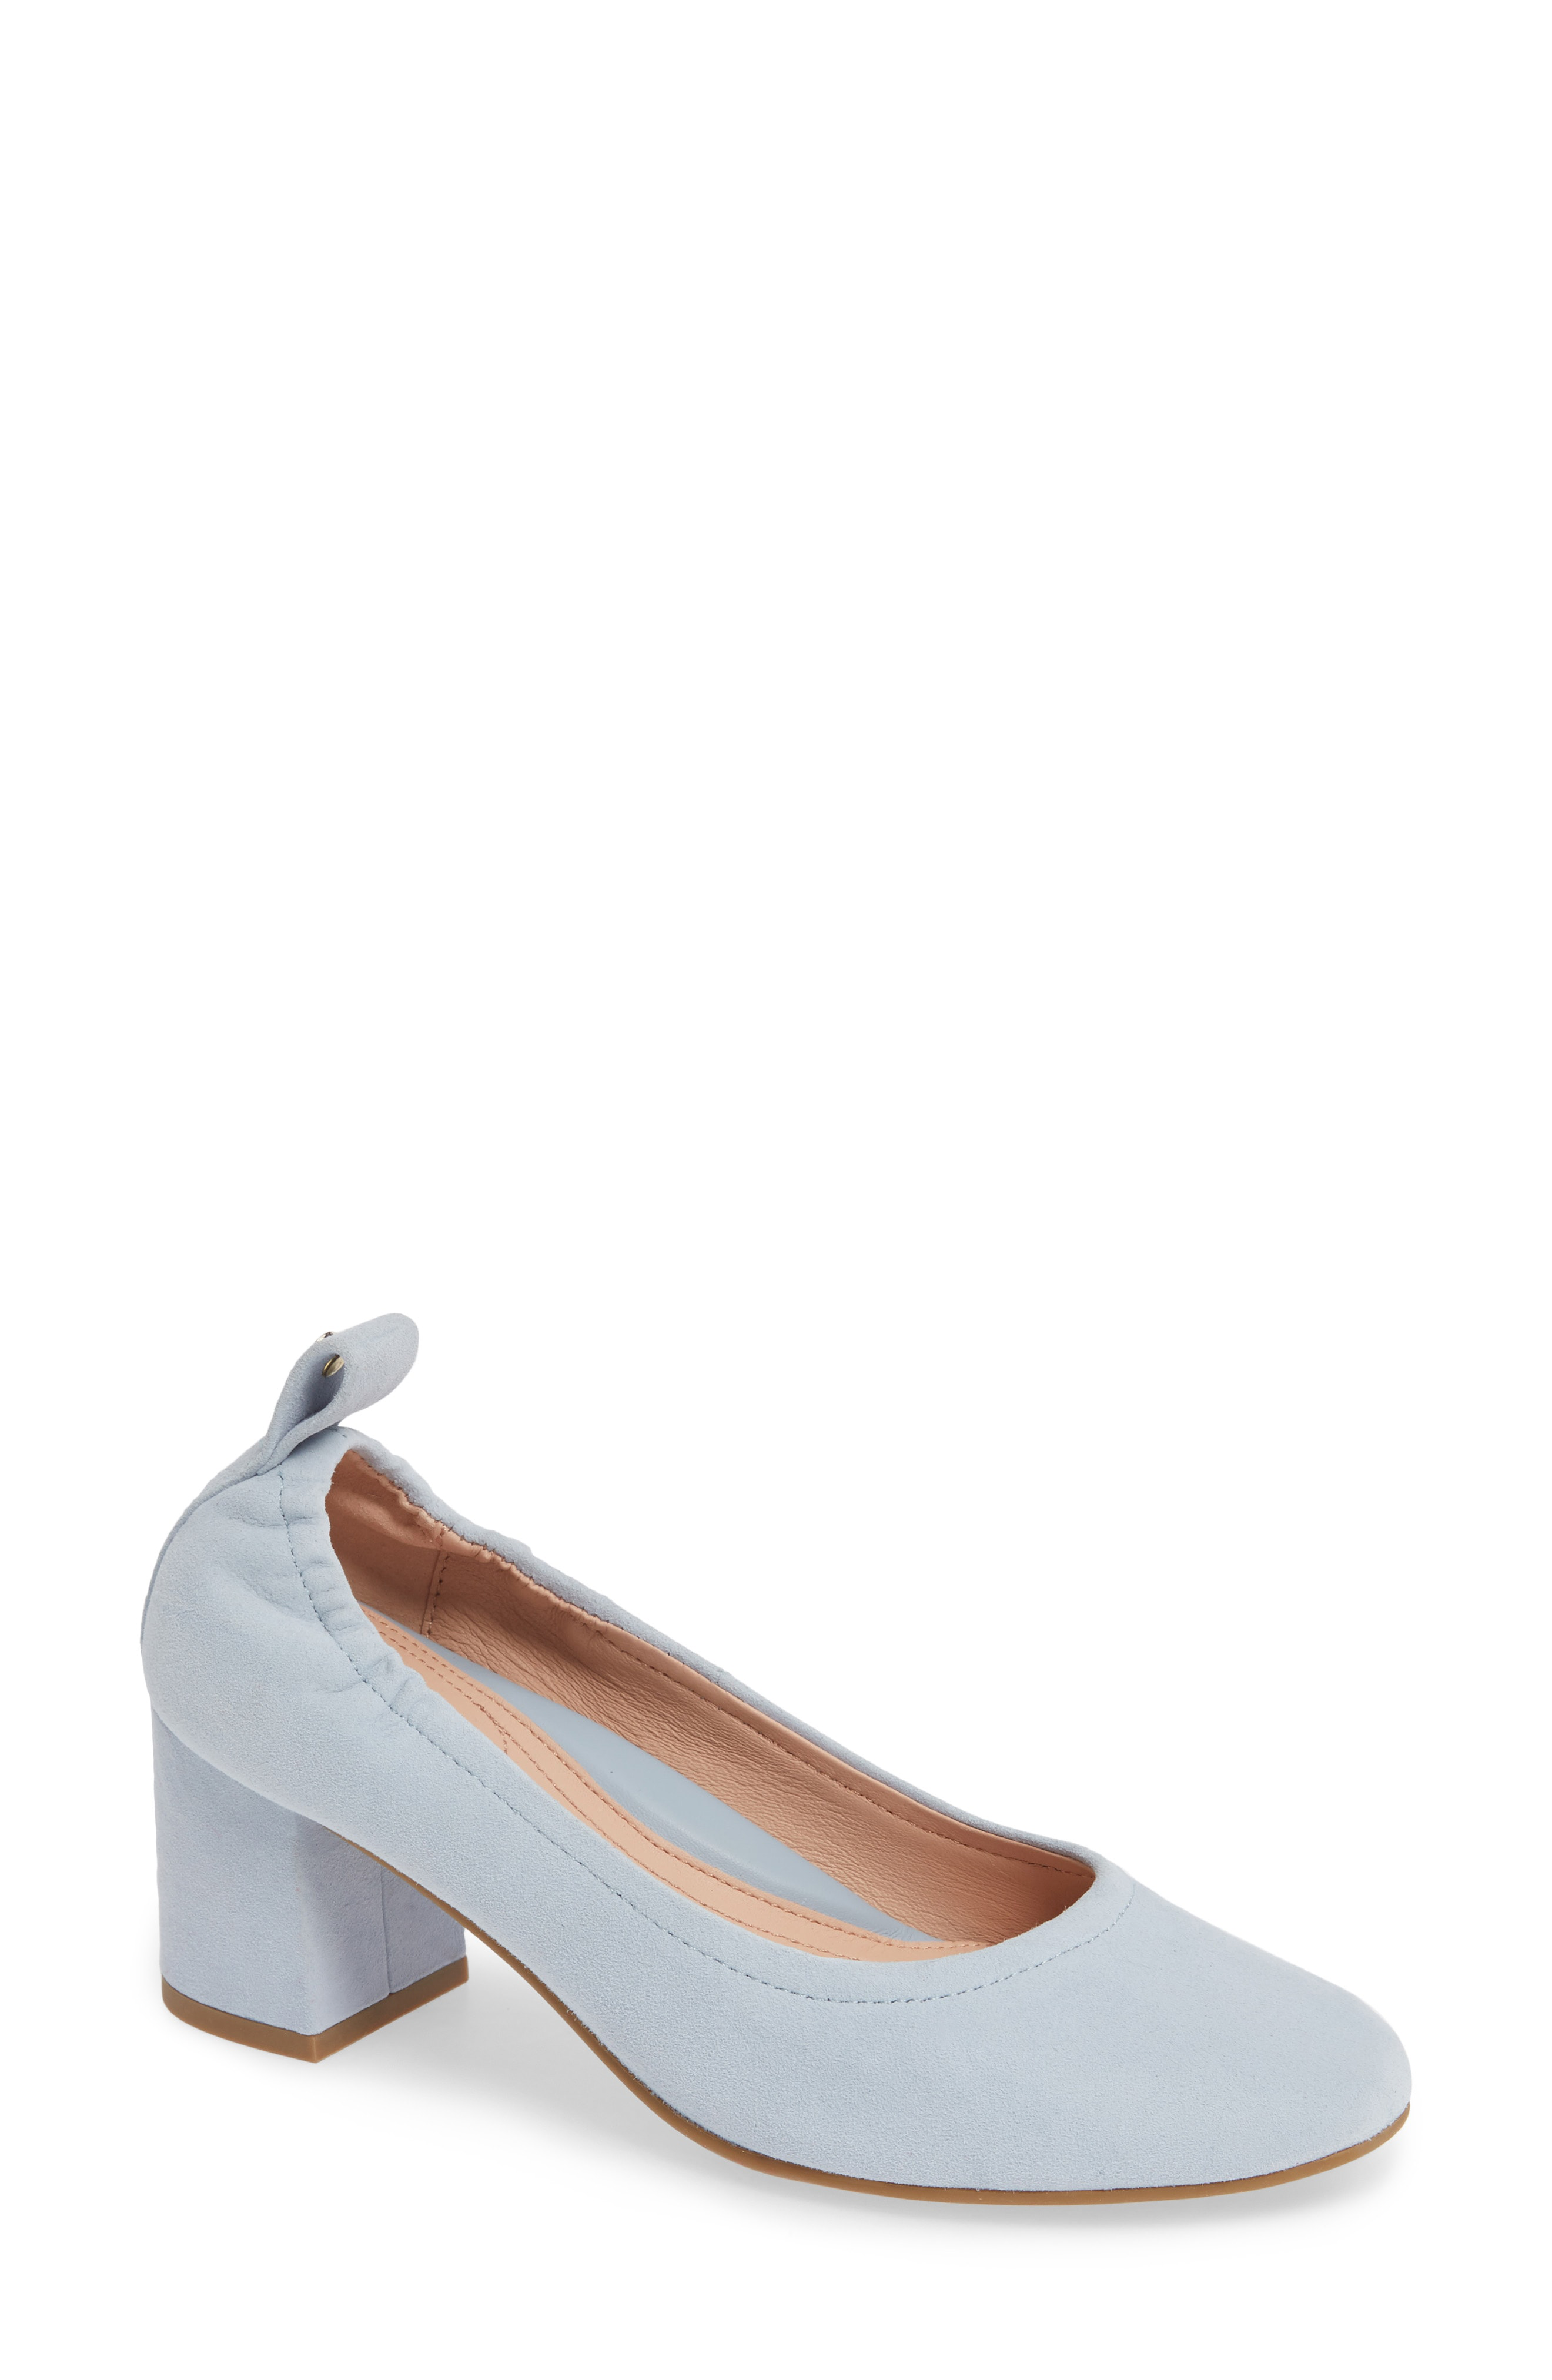 9b509b4babe3b A well-cushioned footbed adds walkable comfort to this streamlined and  versatile block-heel pump. Style Name  Taryn Rose Savannah Pump (Women).